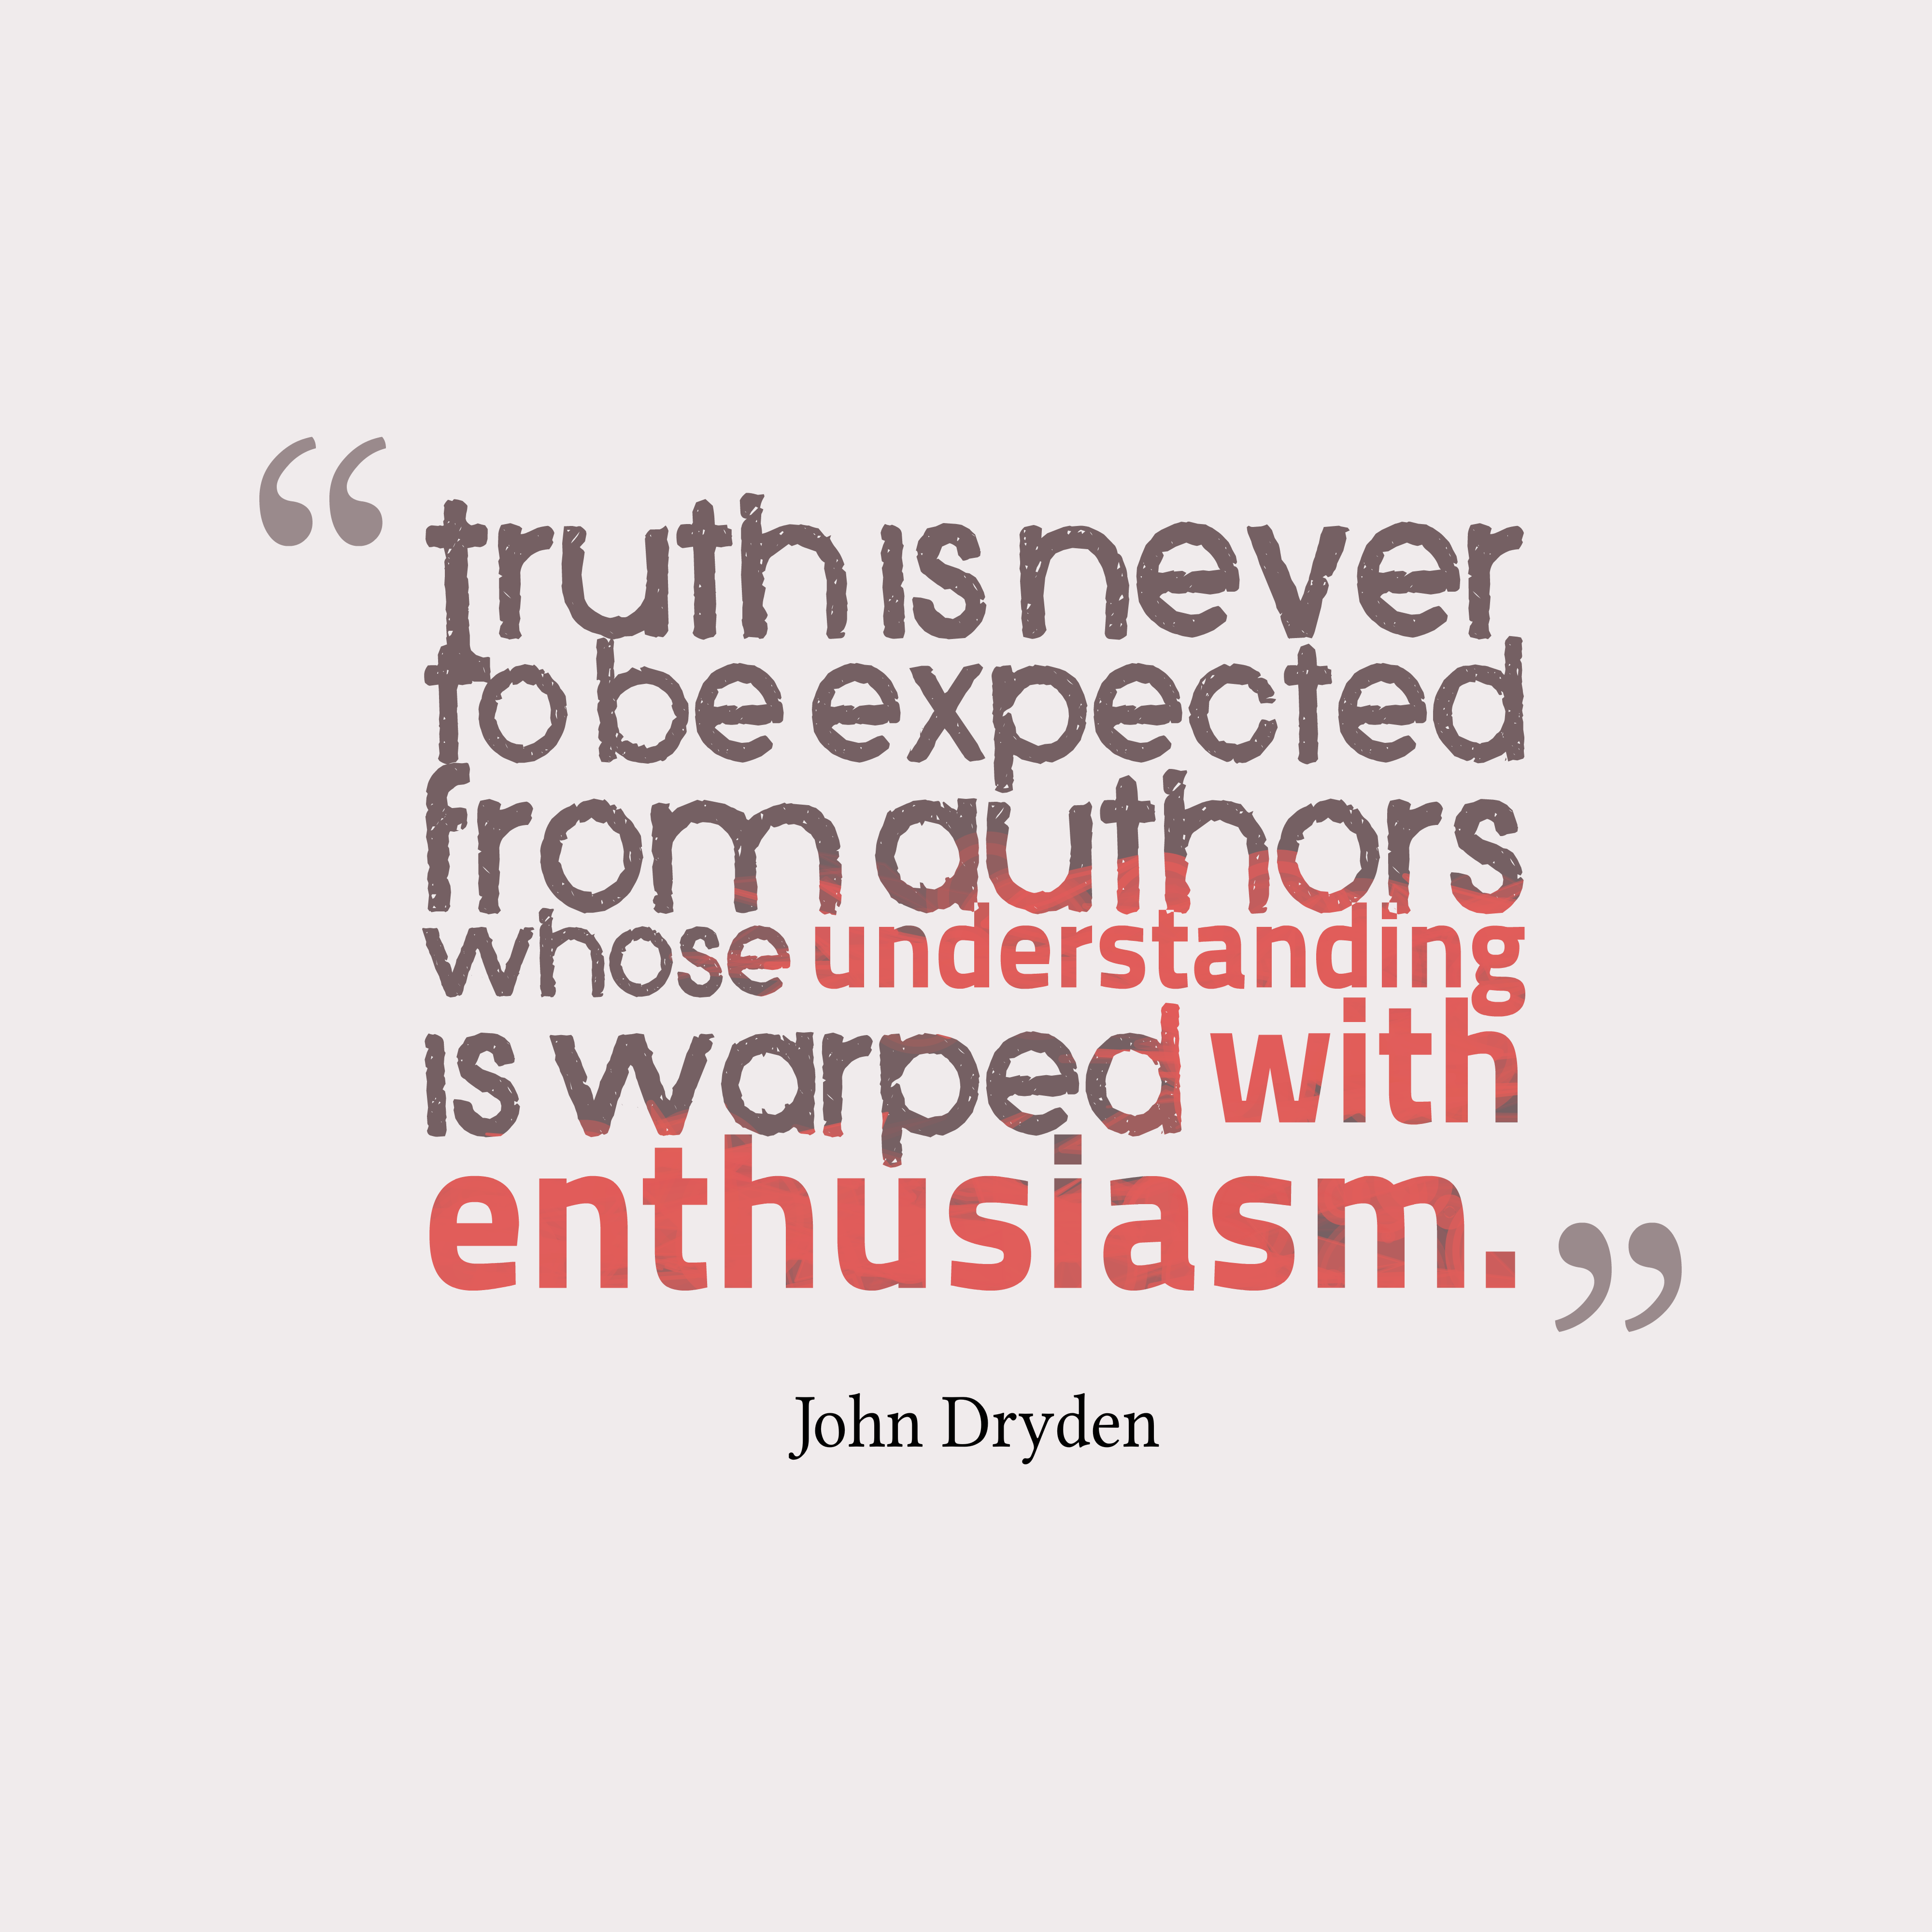 Quotes image of Truth is never to be expected from authors whose understanding is warped with enthusiasm.